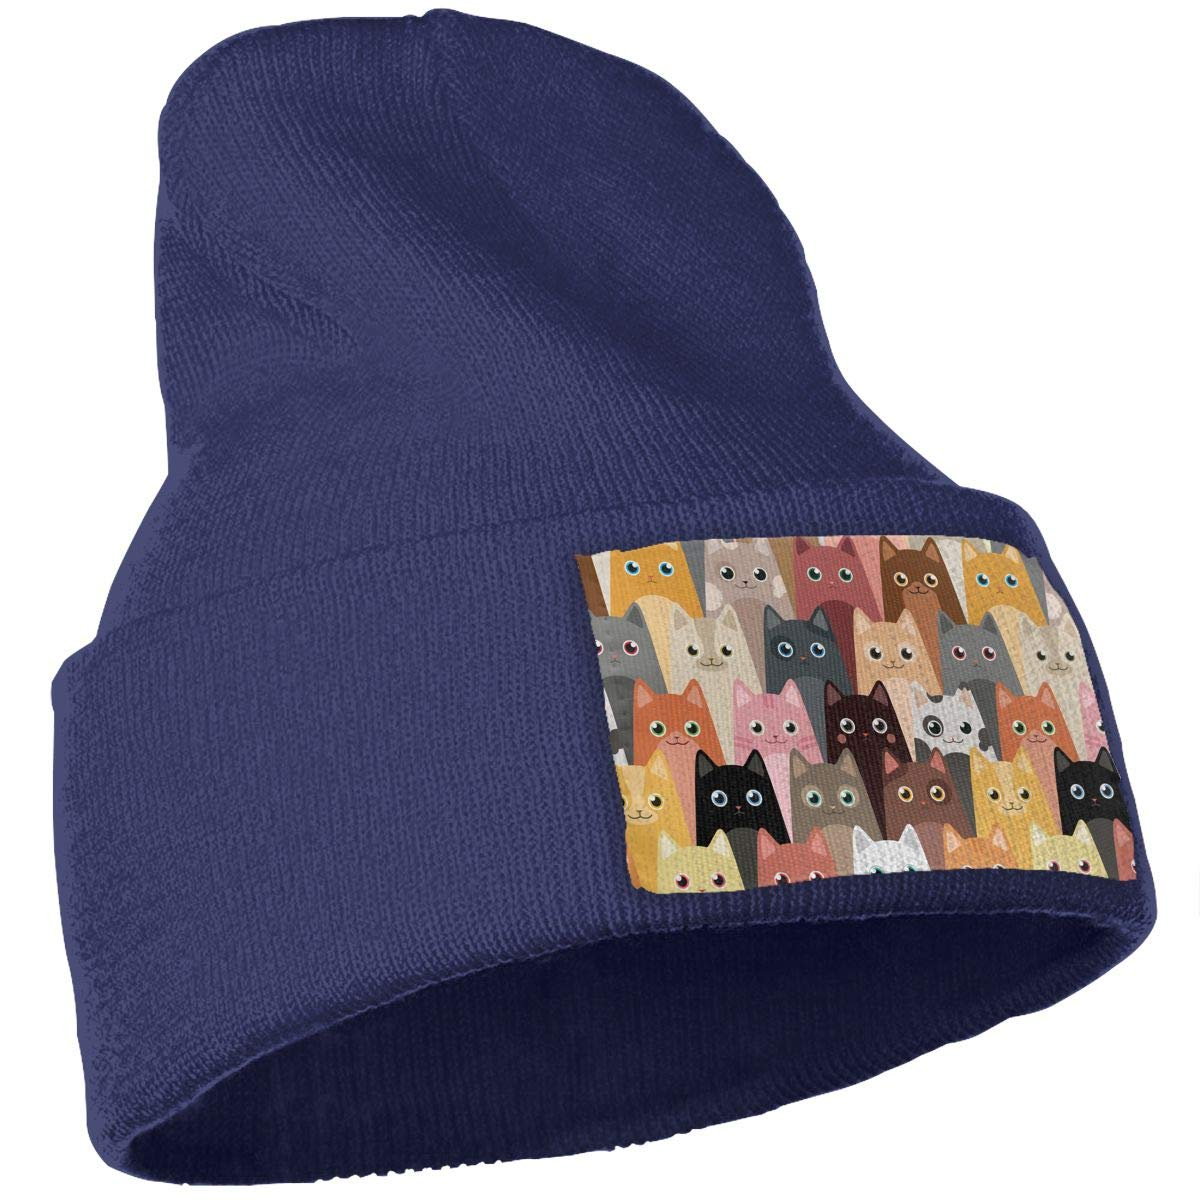 Cute Cartoon Cats Unisex Fashion Knitted Hat Luxury Hip-Hop Cap